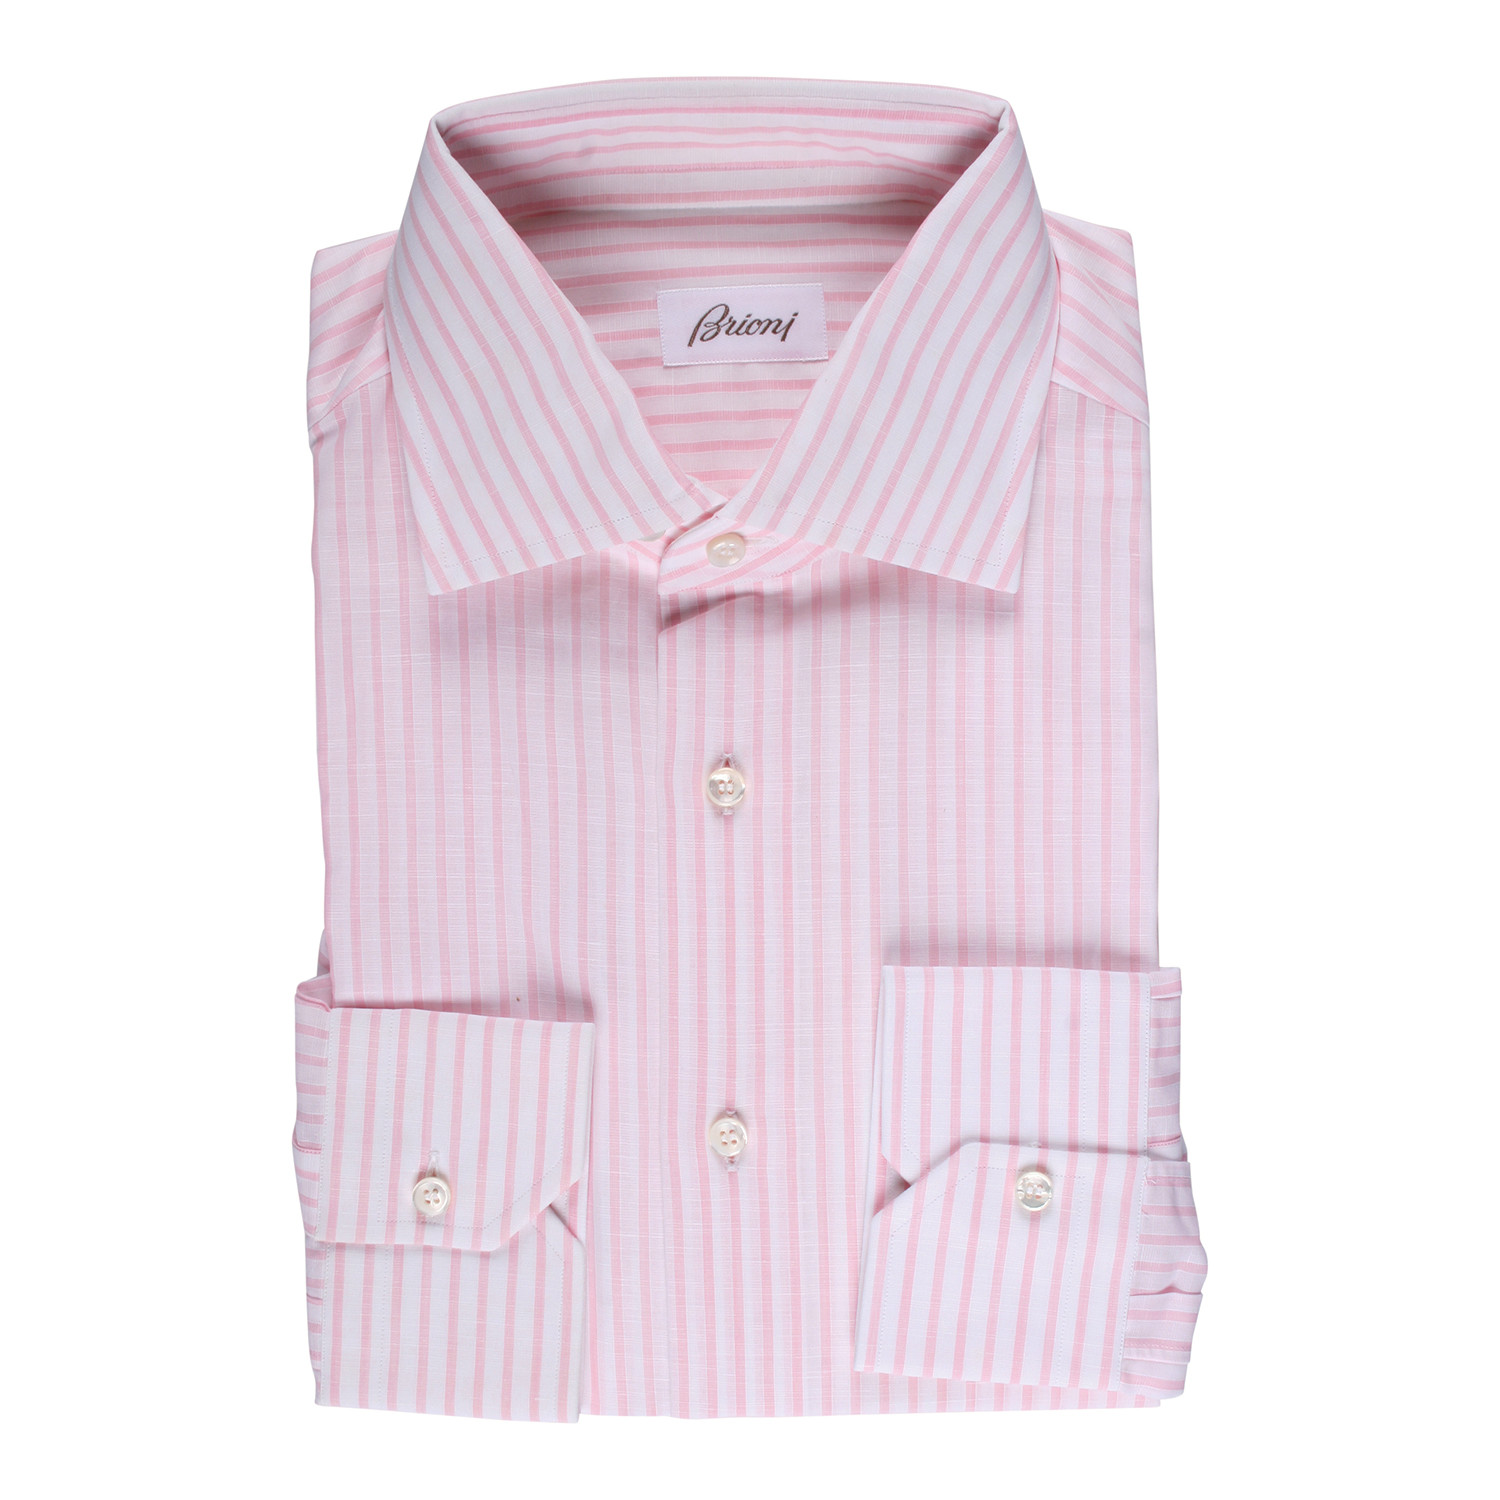 Brioni Chester Dress Shirt Pink Euro 39 Immaculate Dress